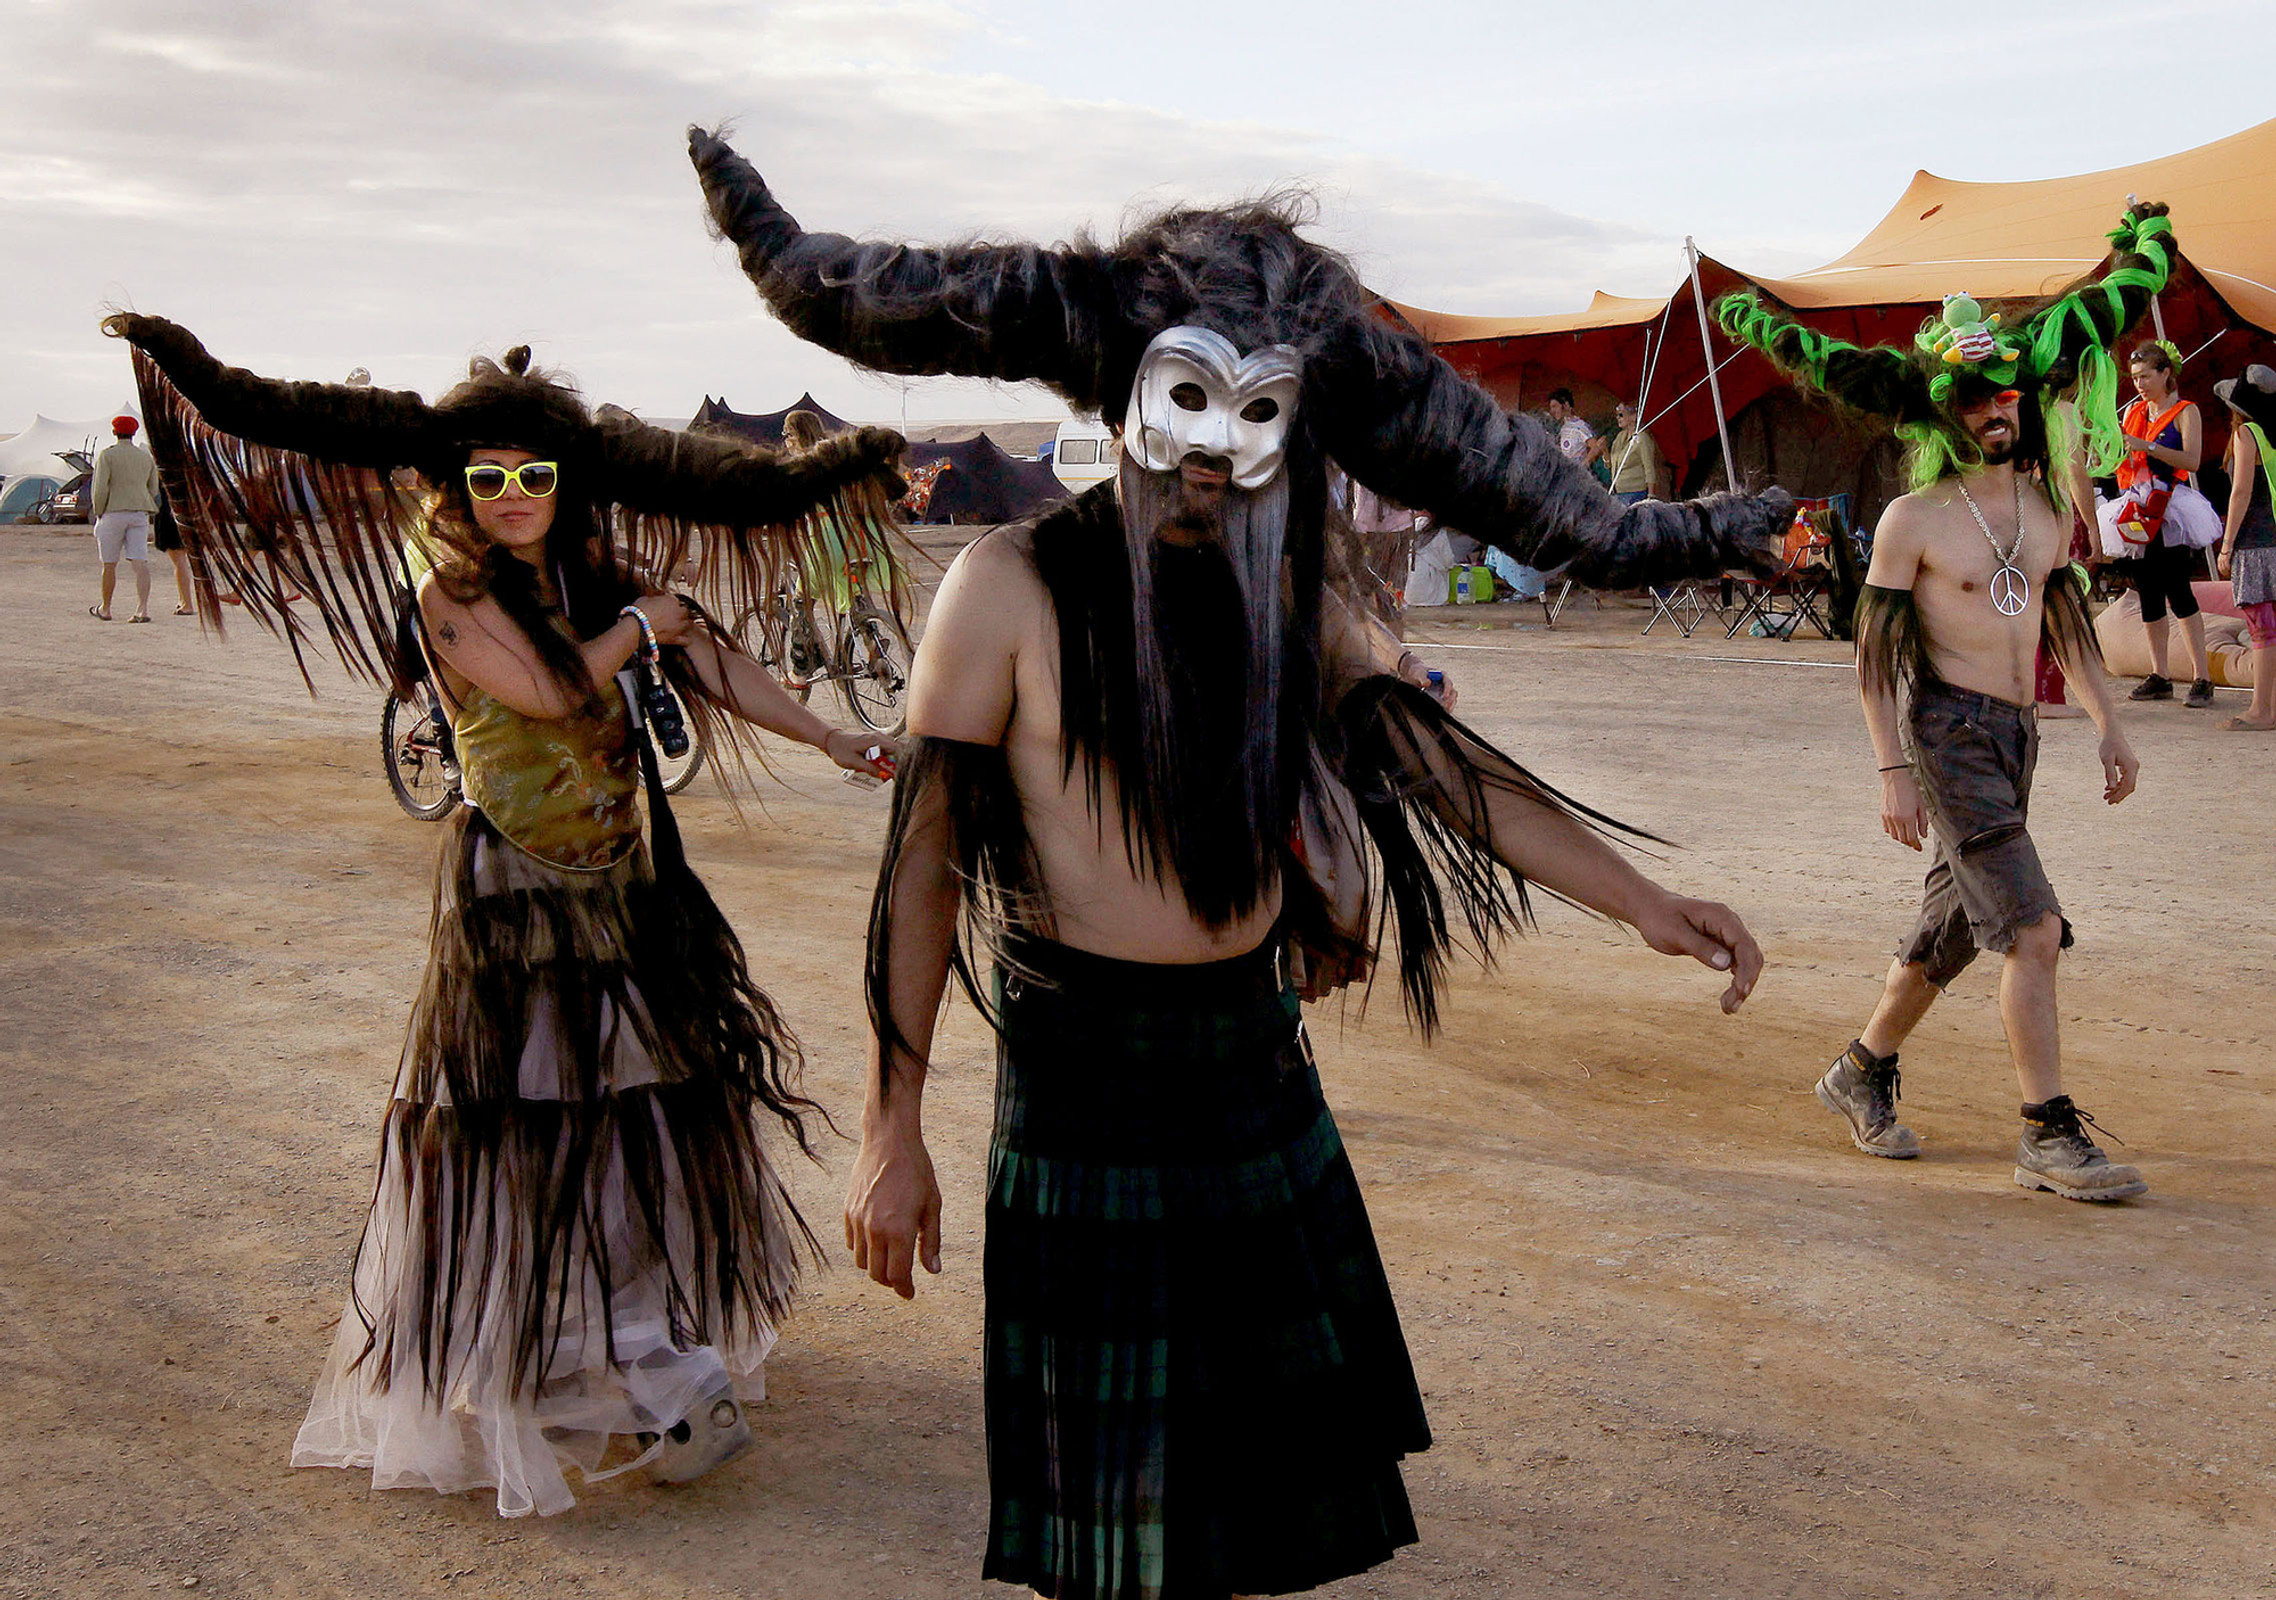 Africa's Burning Man, South Africa.